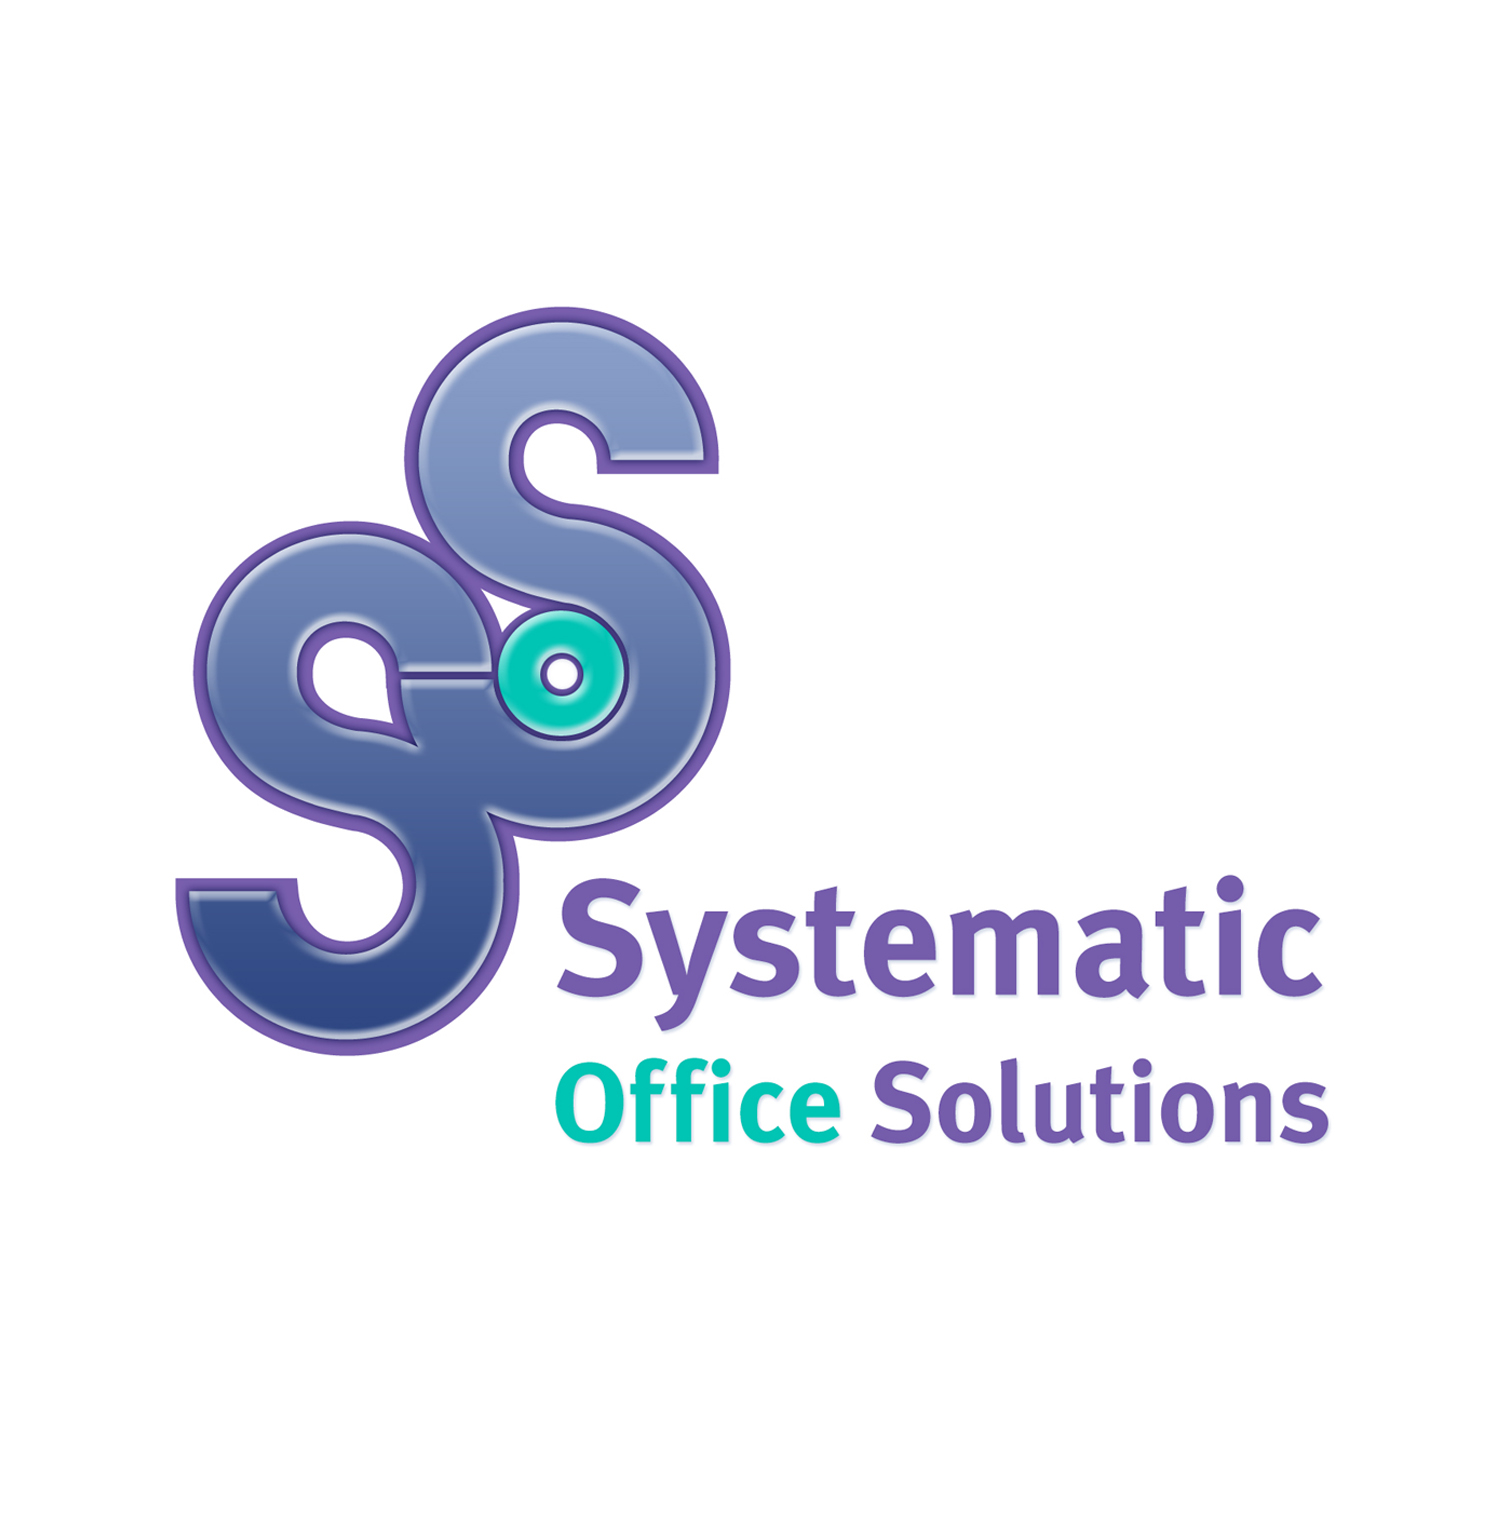 Systematic Office Solutions logo